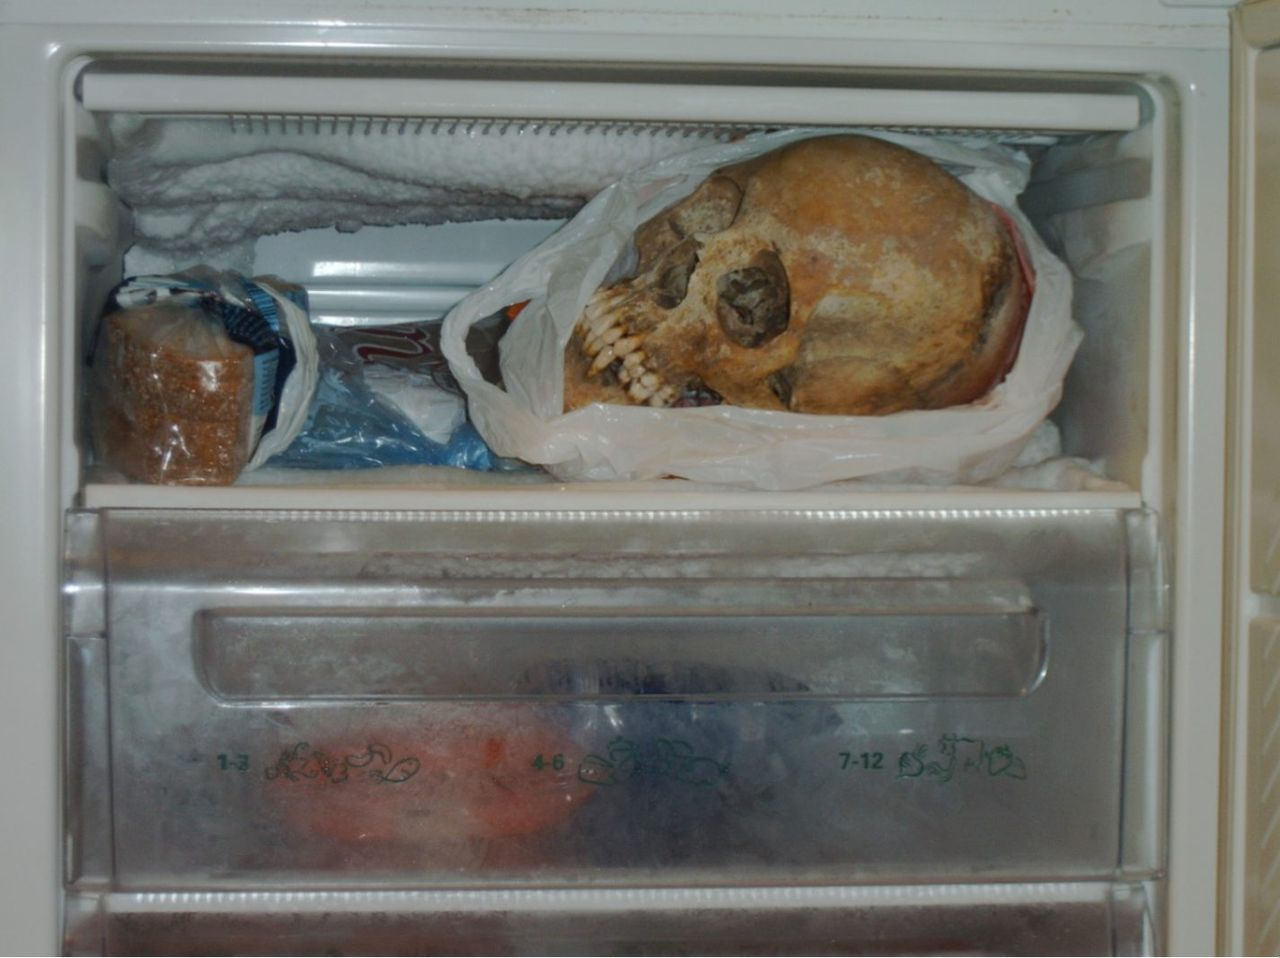 "This is an undated Swedish police handout made available on Tuesday Nov. 20, 2012, showing a human skull in a freezer in the apartment of a 37-year-old woman in Goteborg, southern Sweden. A woman in Sweden has been accused of necrophilia after investigators found some 100 skeleton parts in her apartment. The Swedish news agency TT cites prosecutor Kristina Ehrenborg-Staffas as saying that the 37-year-old woman is suspected of using the remains, which included six skulls and one backbone, in ""sexual situations."" The woman from southwestern Sweden was charged ""with violating the peace of the deceased"" in Goteborg District Court on Tuesday. (AP Photo/Scanpix Sweden/Swedish Police via Scanpix Sweden ) SWEDEN OUT MANDATORY CREDIT"